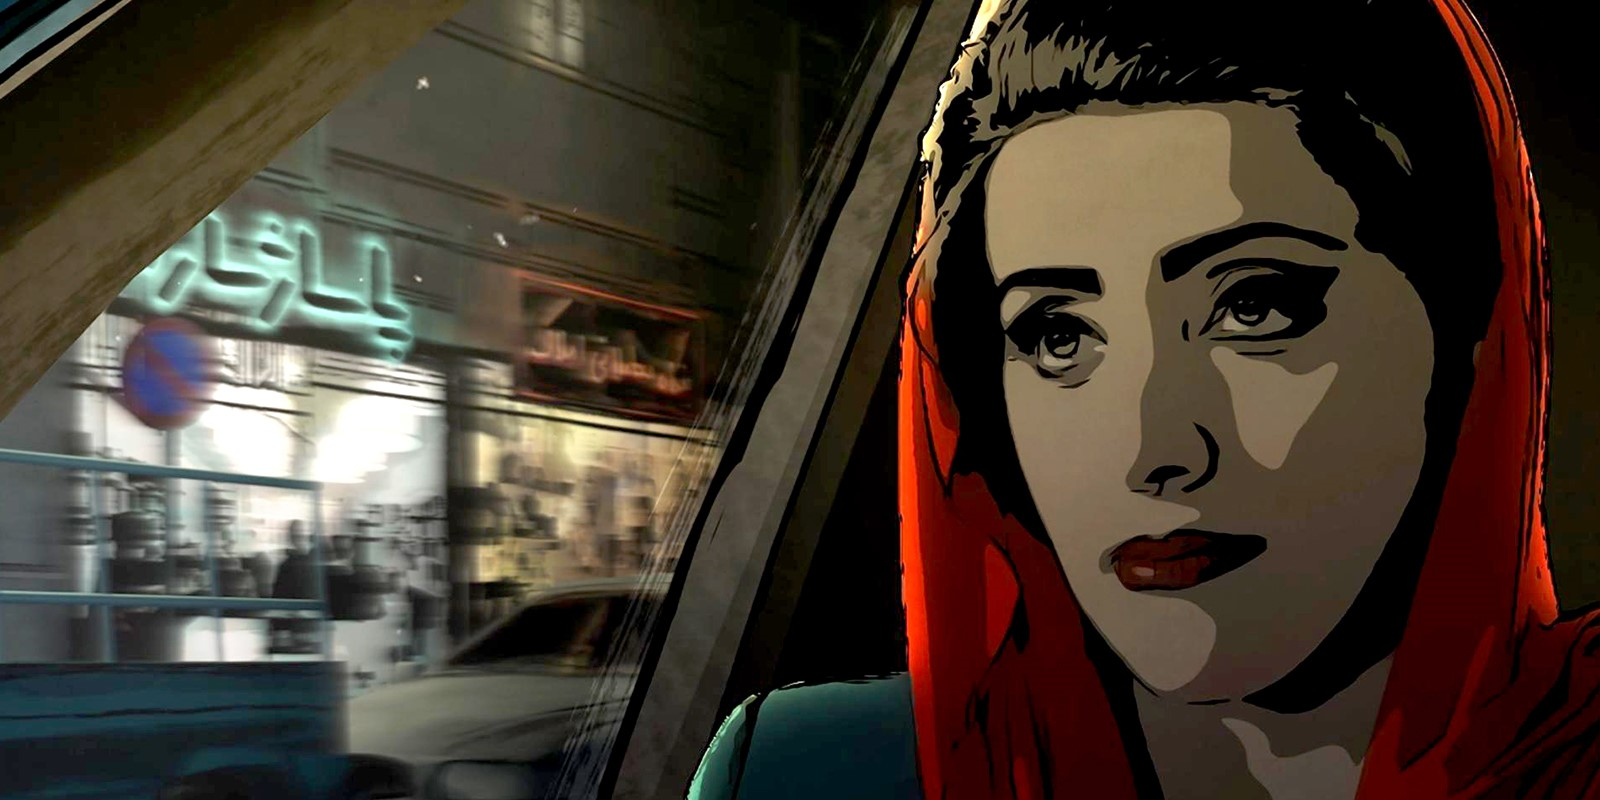 Films in London today: TEHRAN TABOO at BFI (01 OCT).